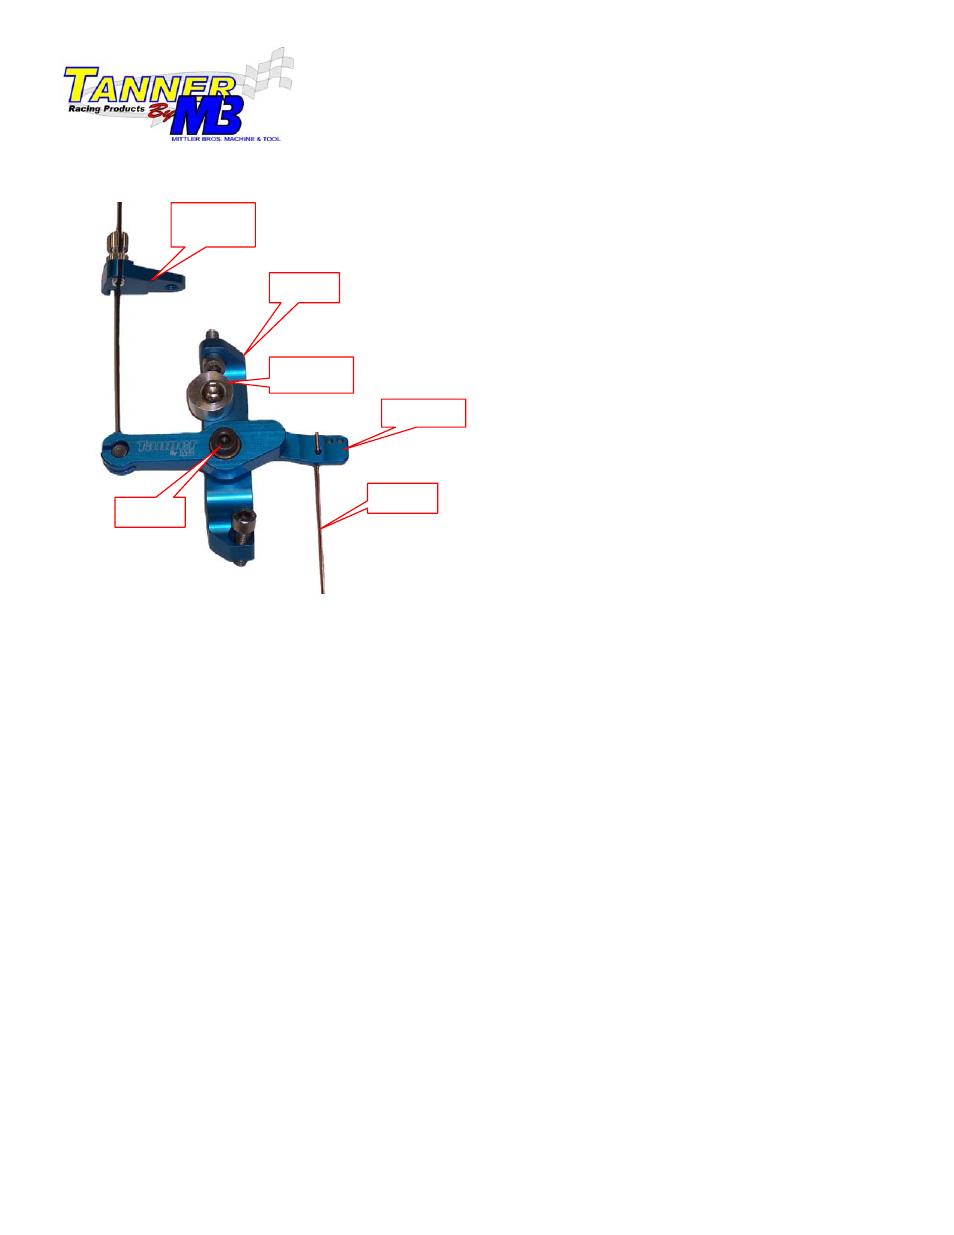 Mittler Bros Machine & Tool 75010 Honda Throttle Linkage Kit User Manual |  1 page